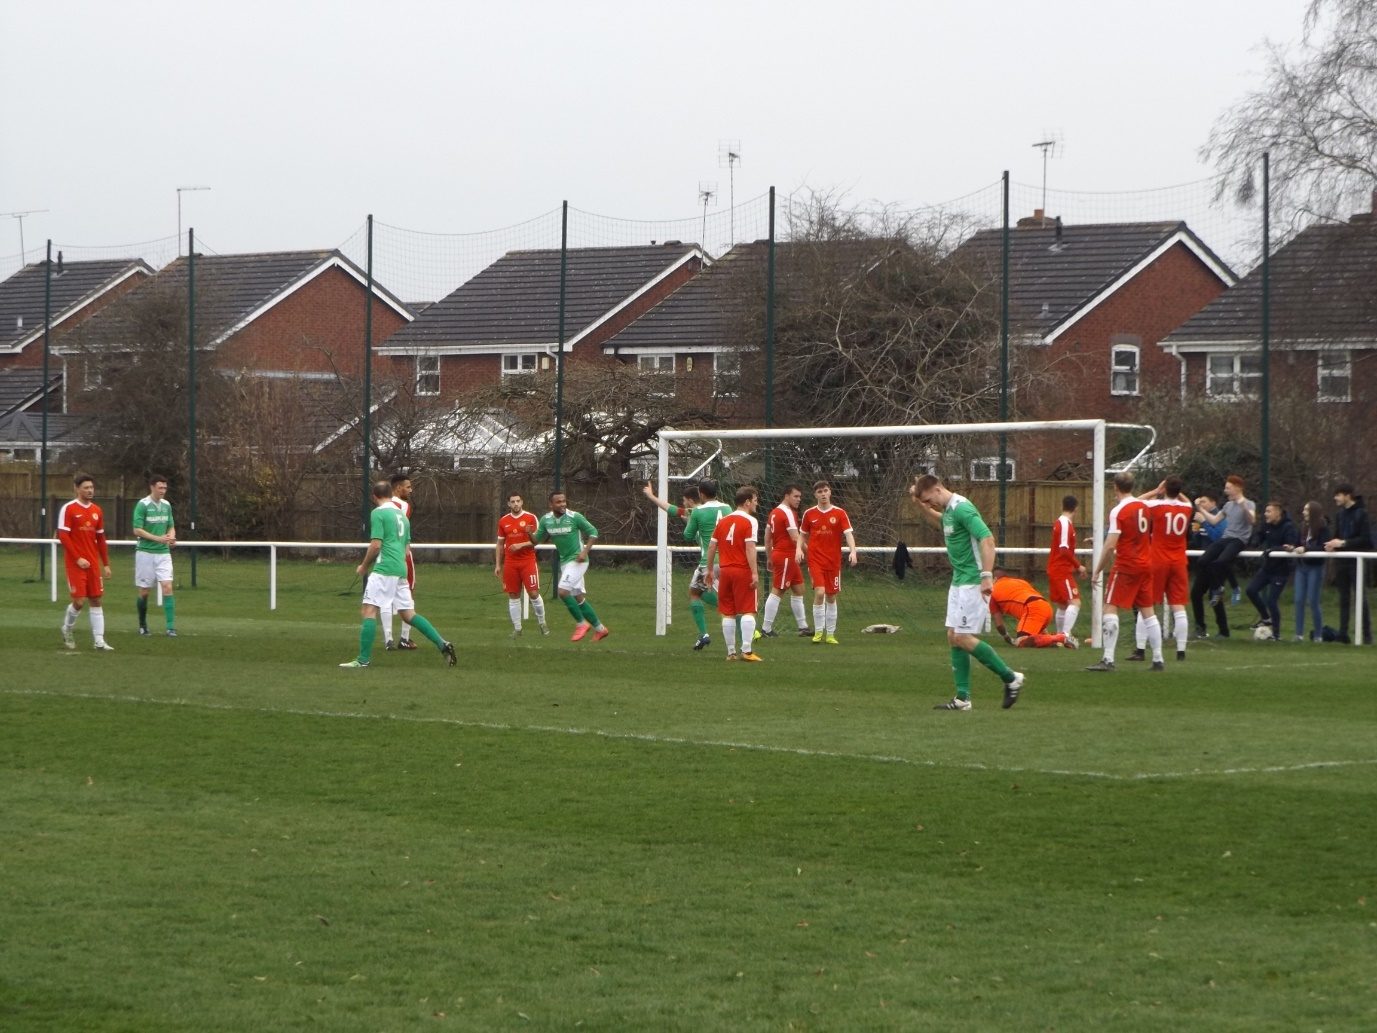 Elation for Brocton as their pressure play brought the first goal. How would the Wood respond?